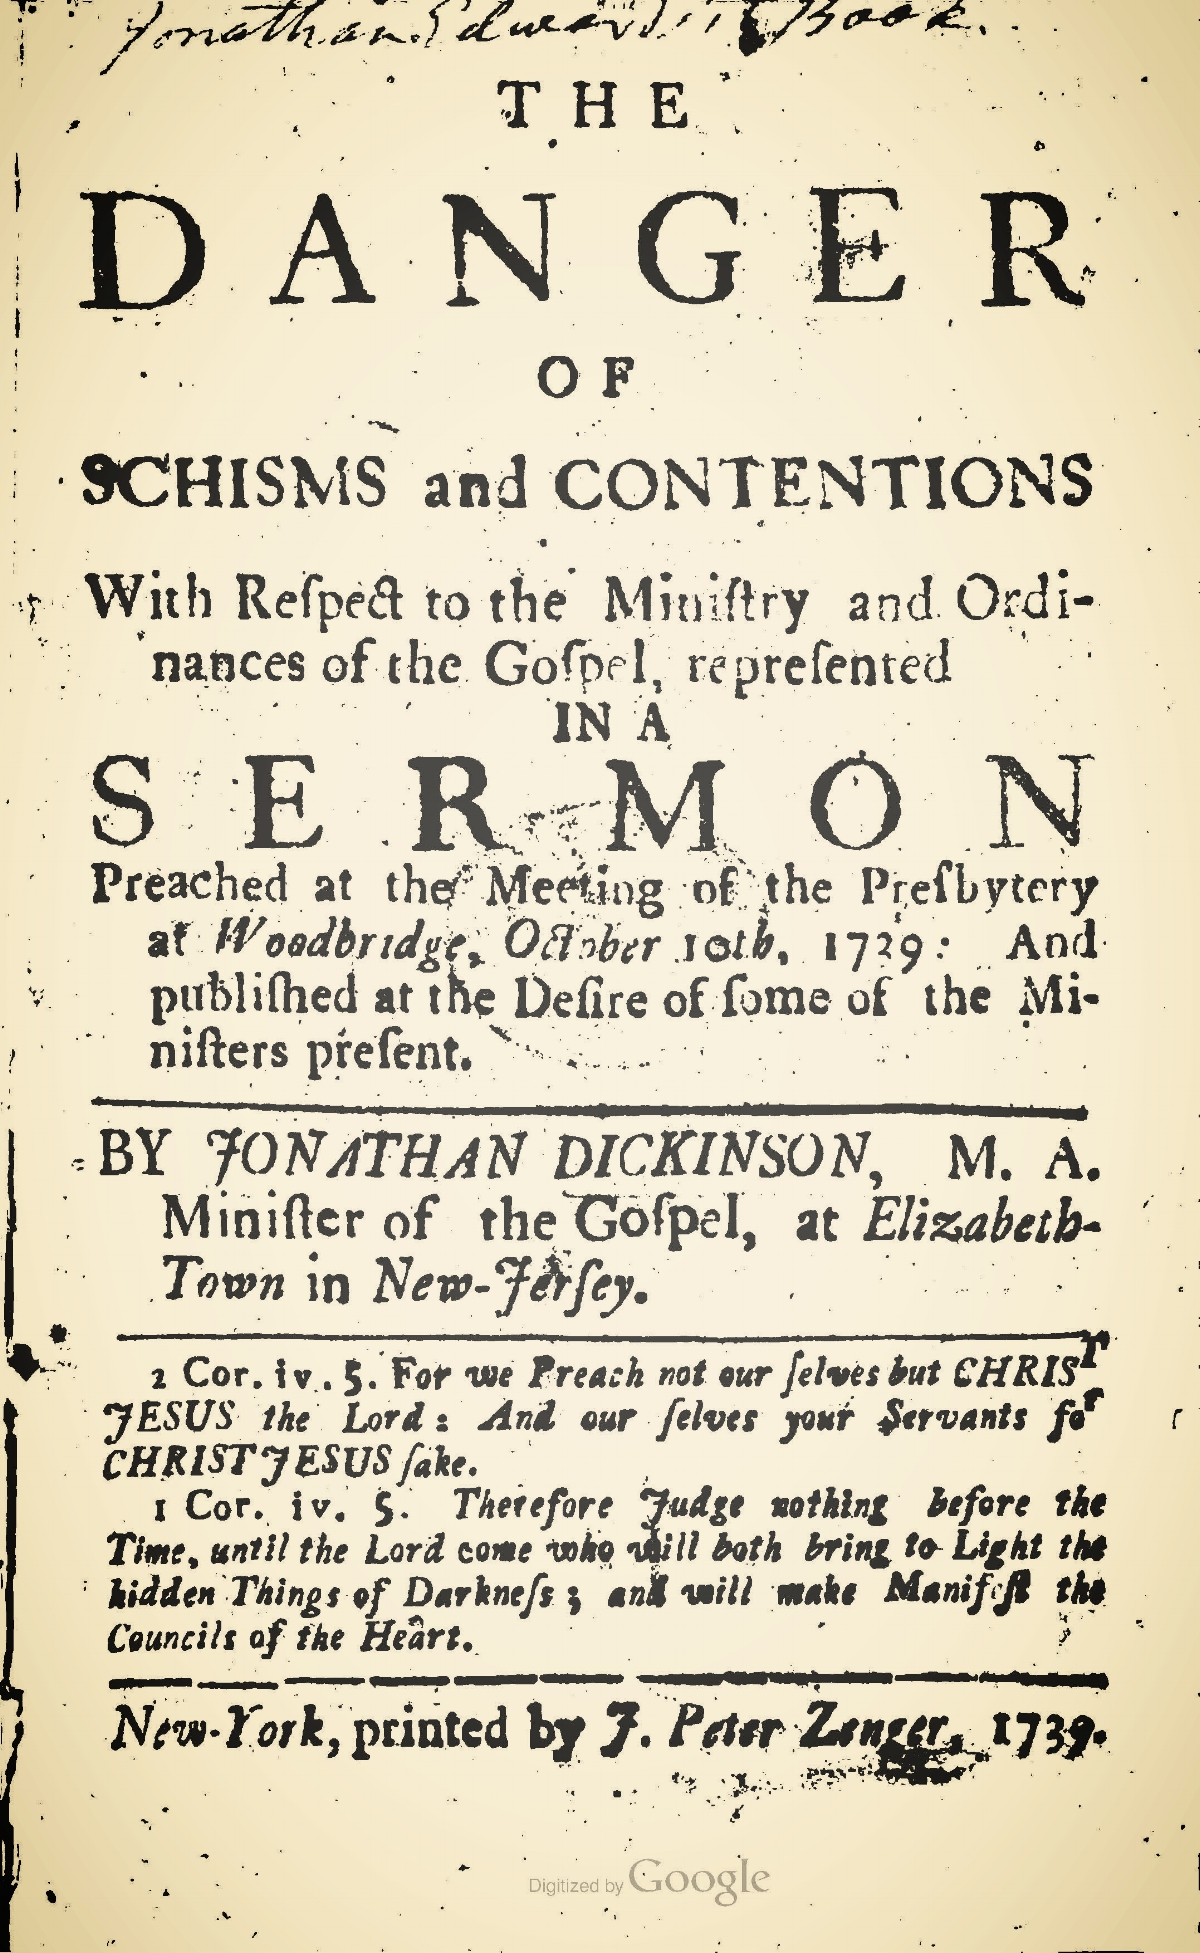 Dickinson, Jonathan, The Danger of Schisms and Contentions Title Page.jpg